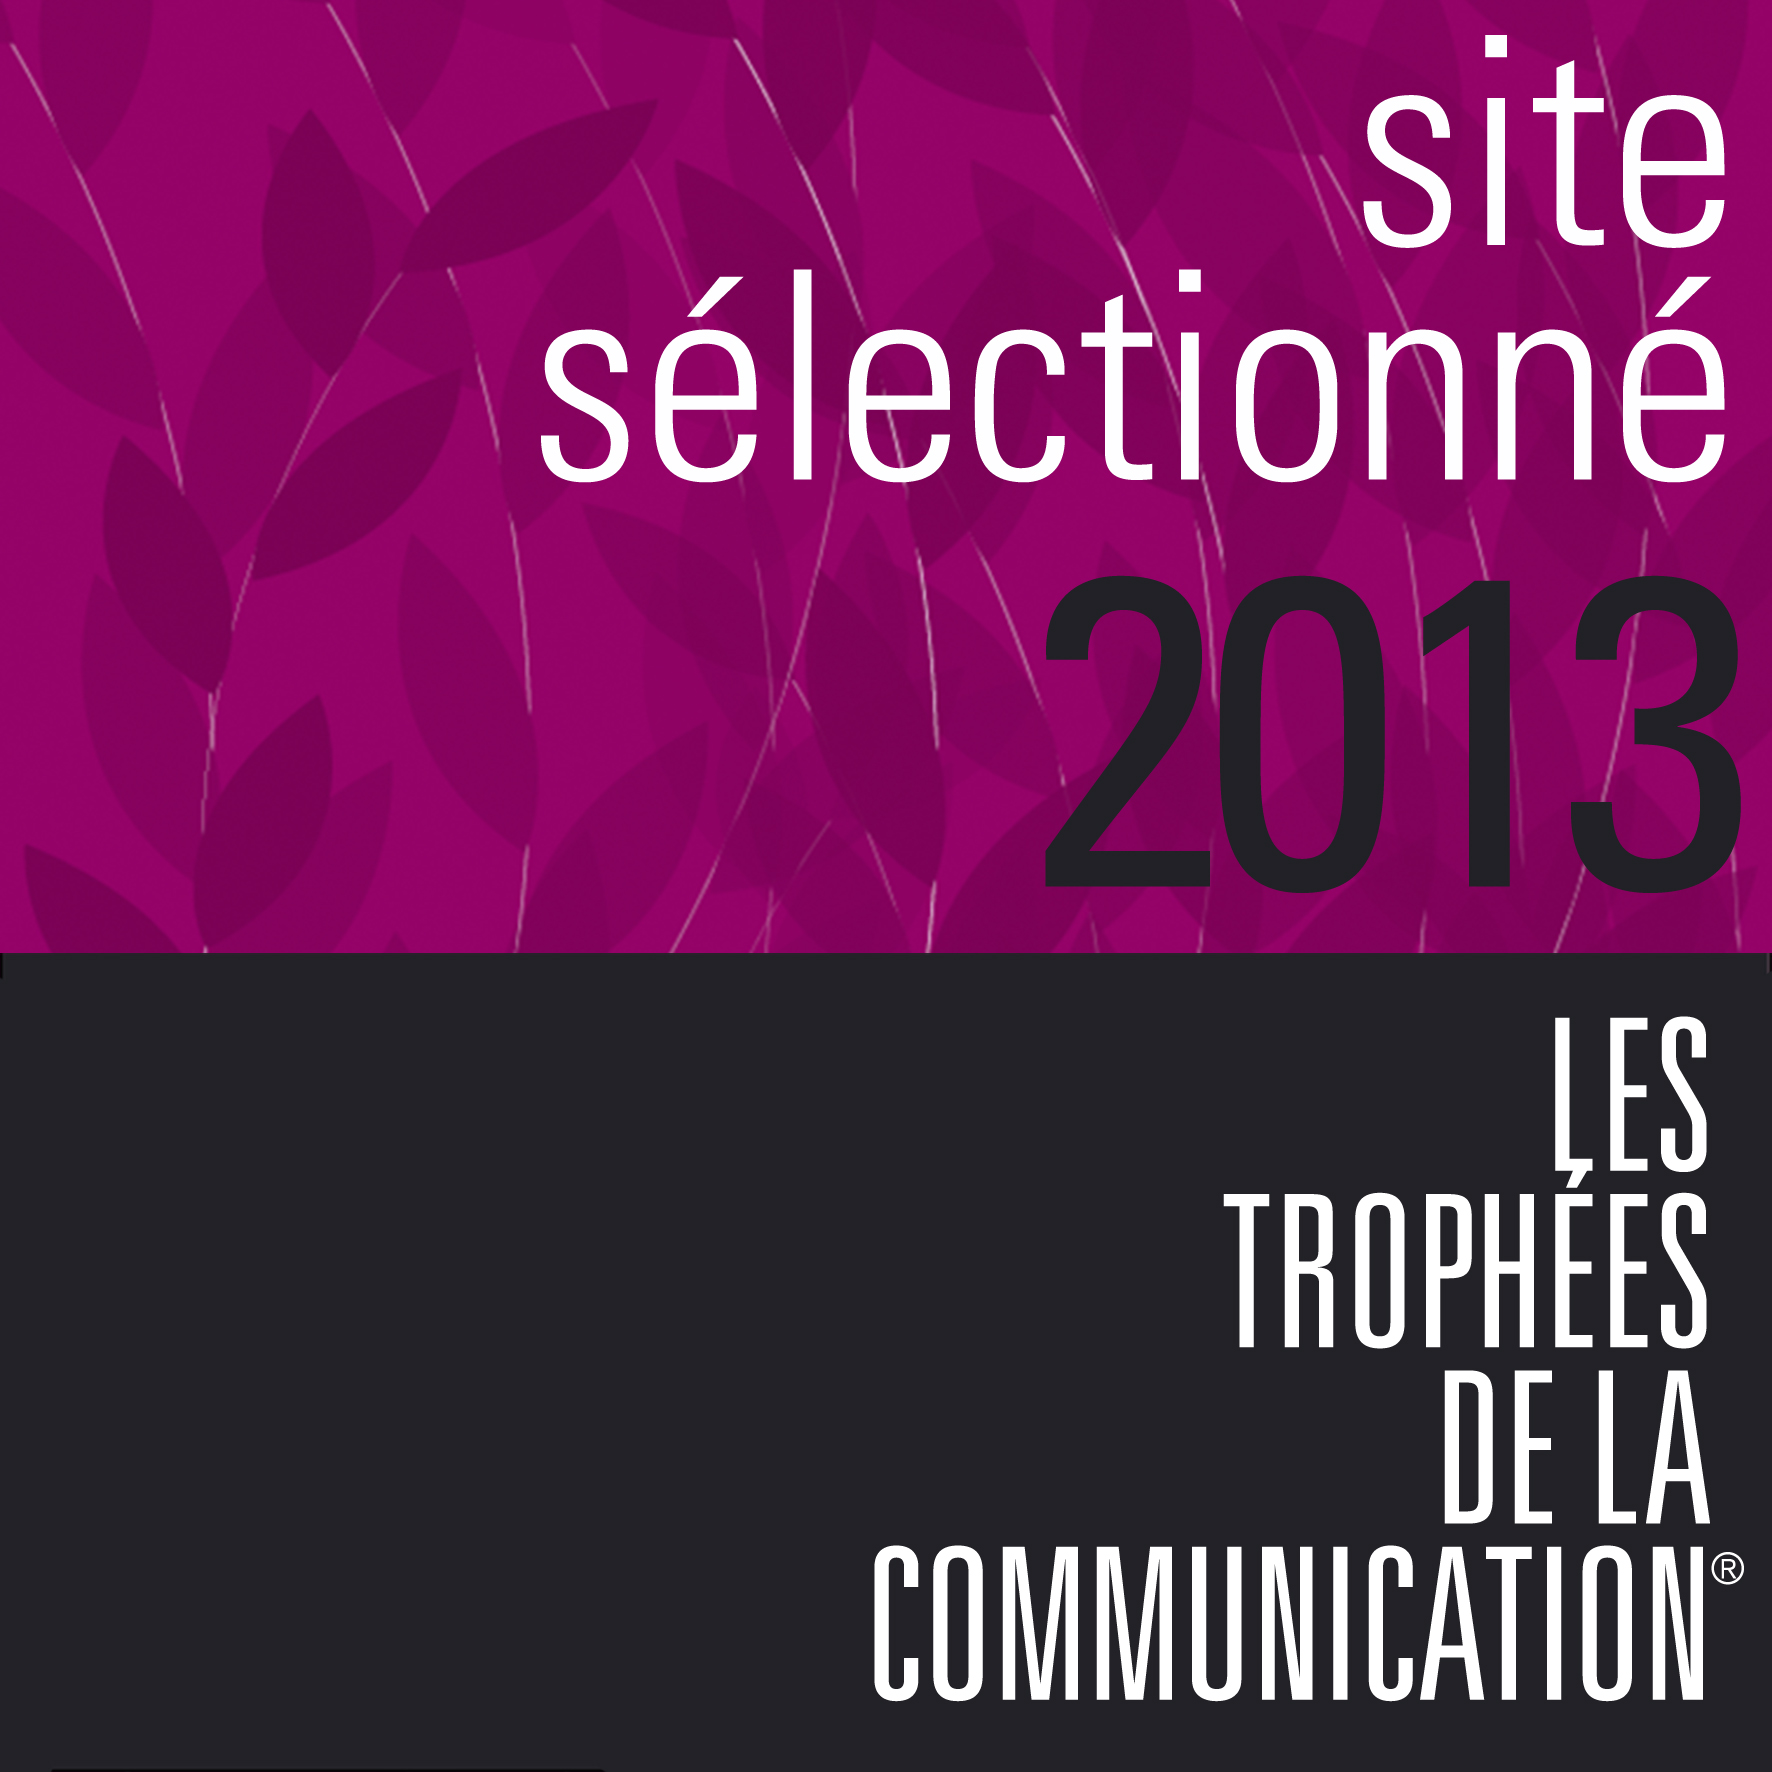 TROPHEES DE LA COMMUNICATION 2013